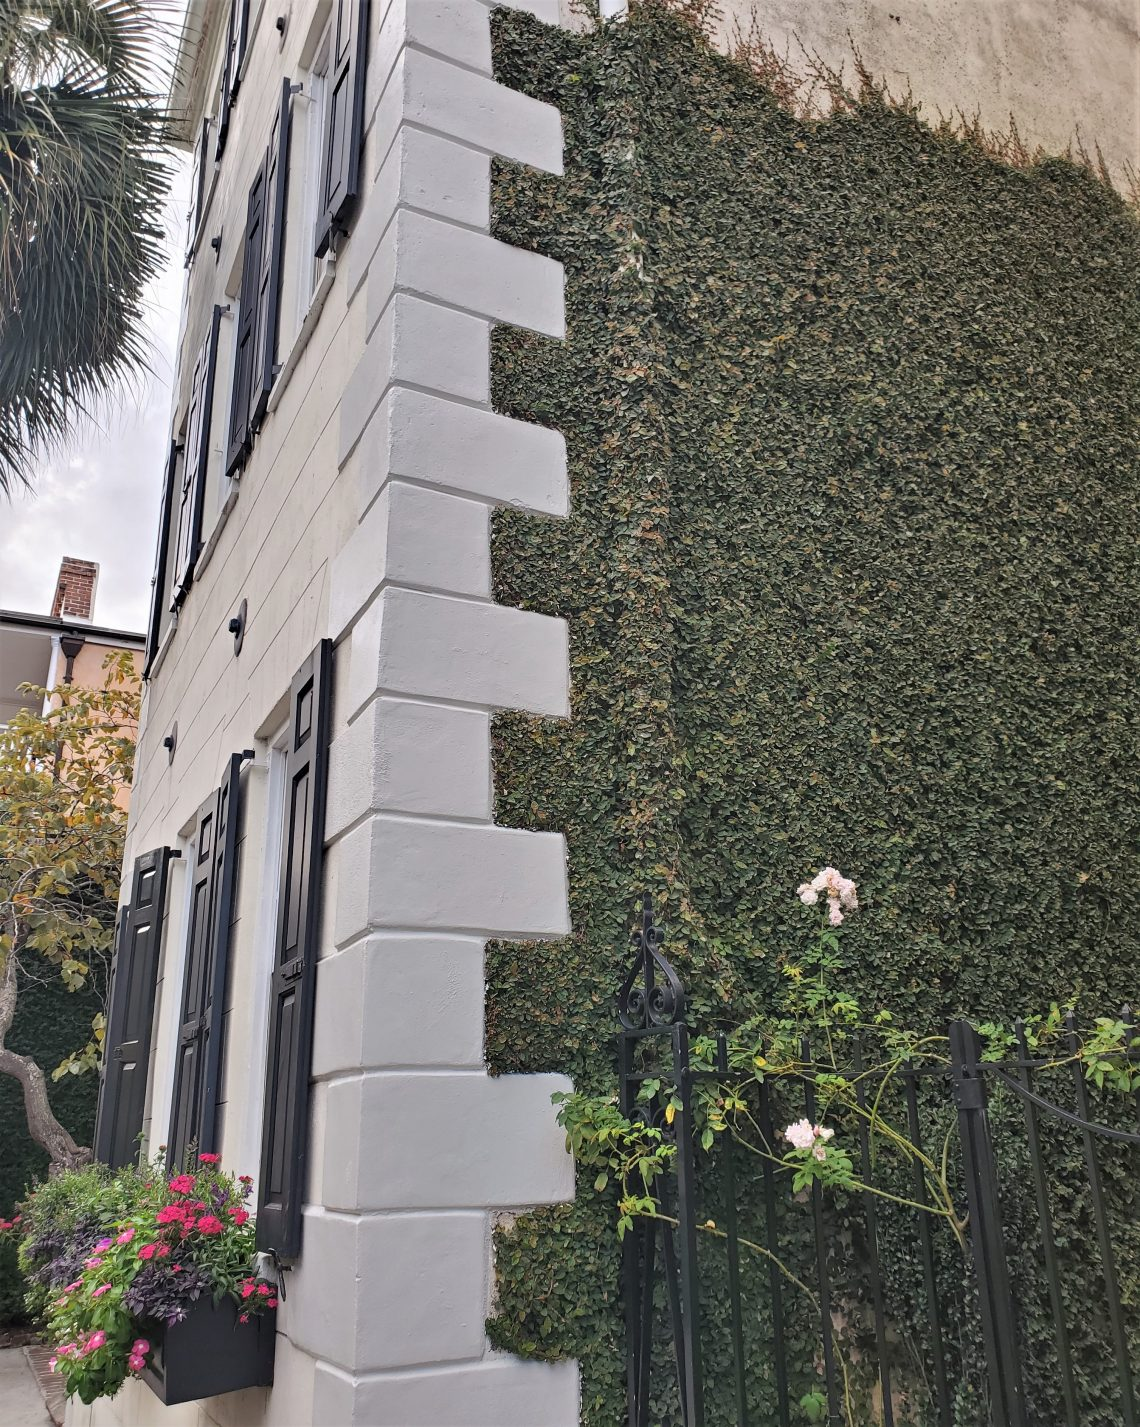 The toothy trim on this Queen Street house is called quoins. Quoins are found on many Charleston masonry and stucco buildings. The quoins usually serve two purposes — to strengthen the construction and for decoration. Here they are complemented by some very well trained ivy.